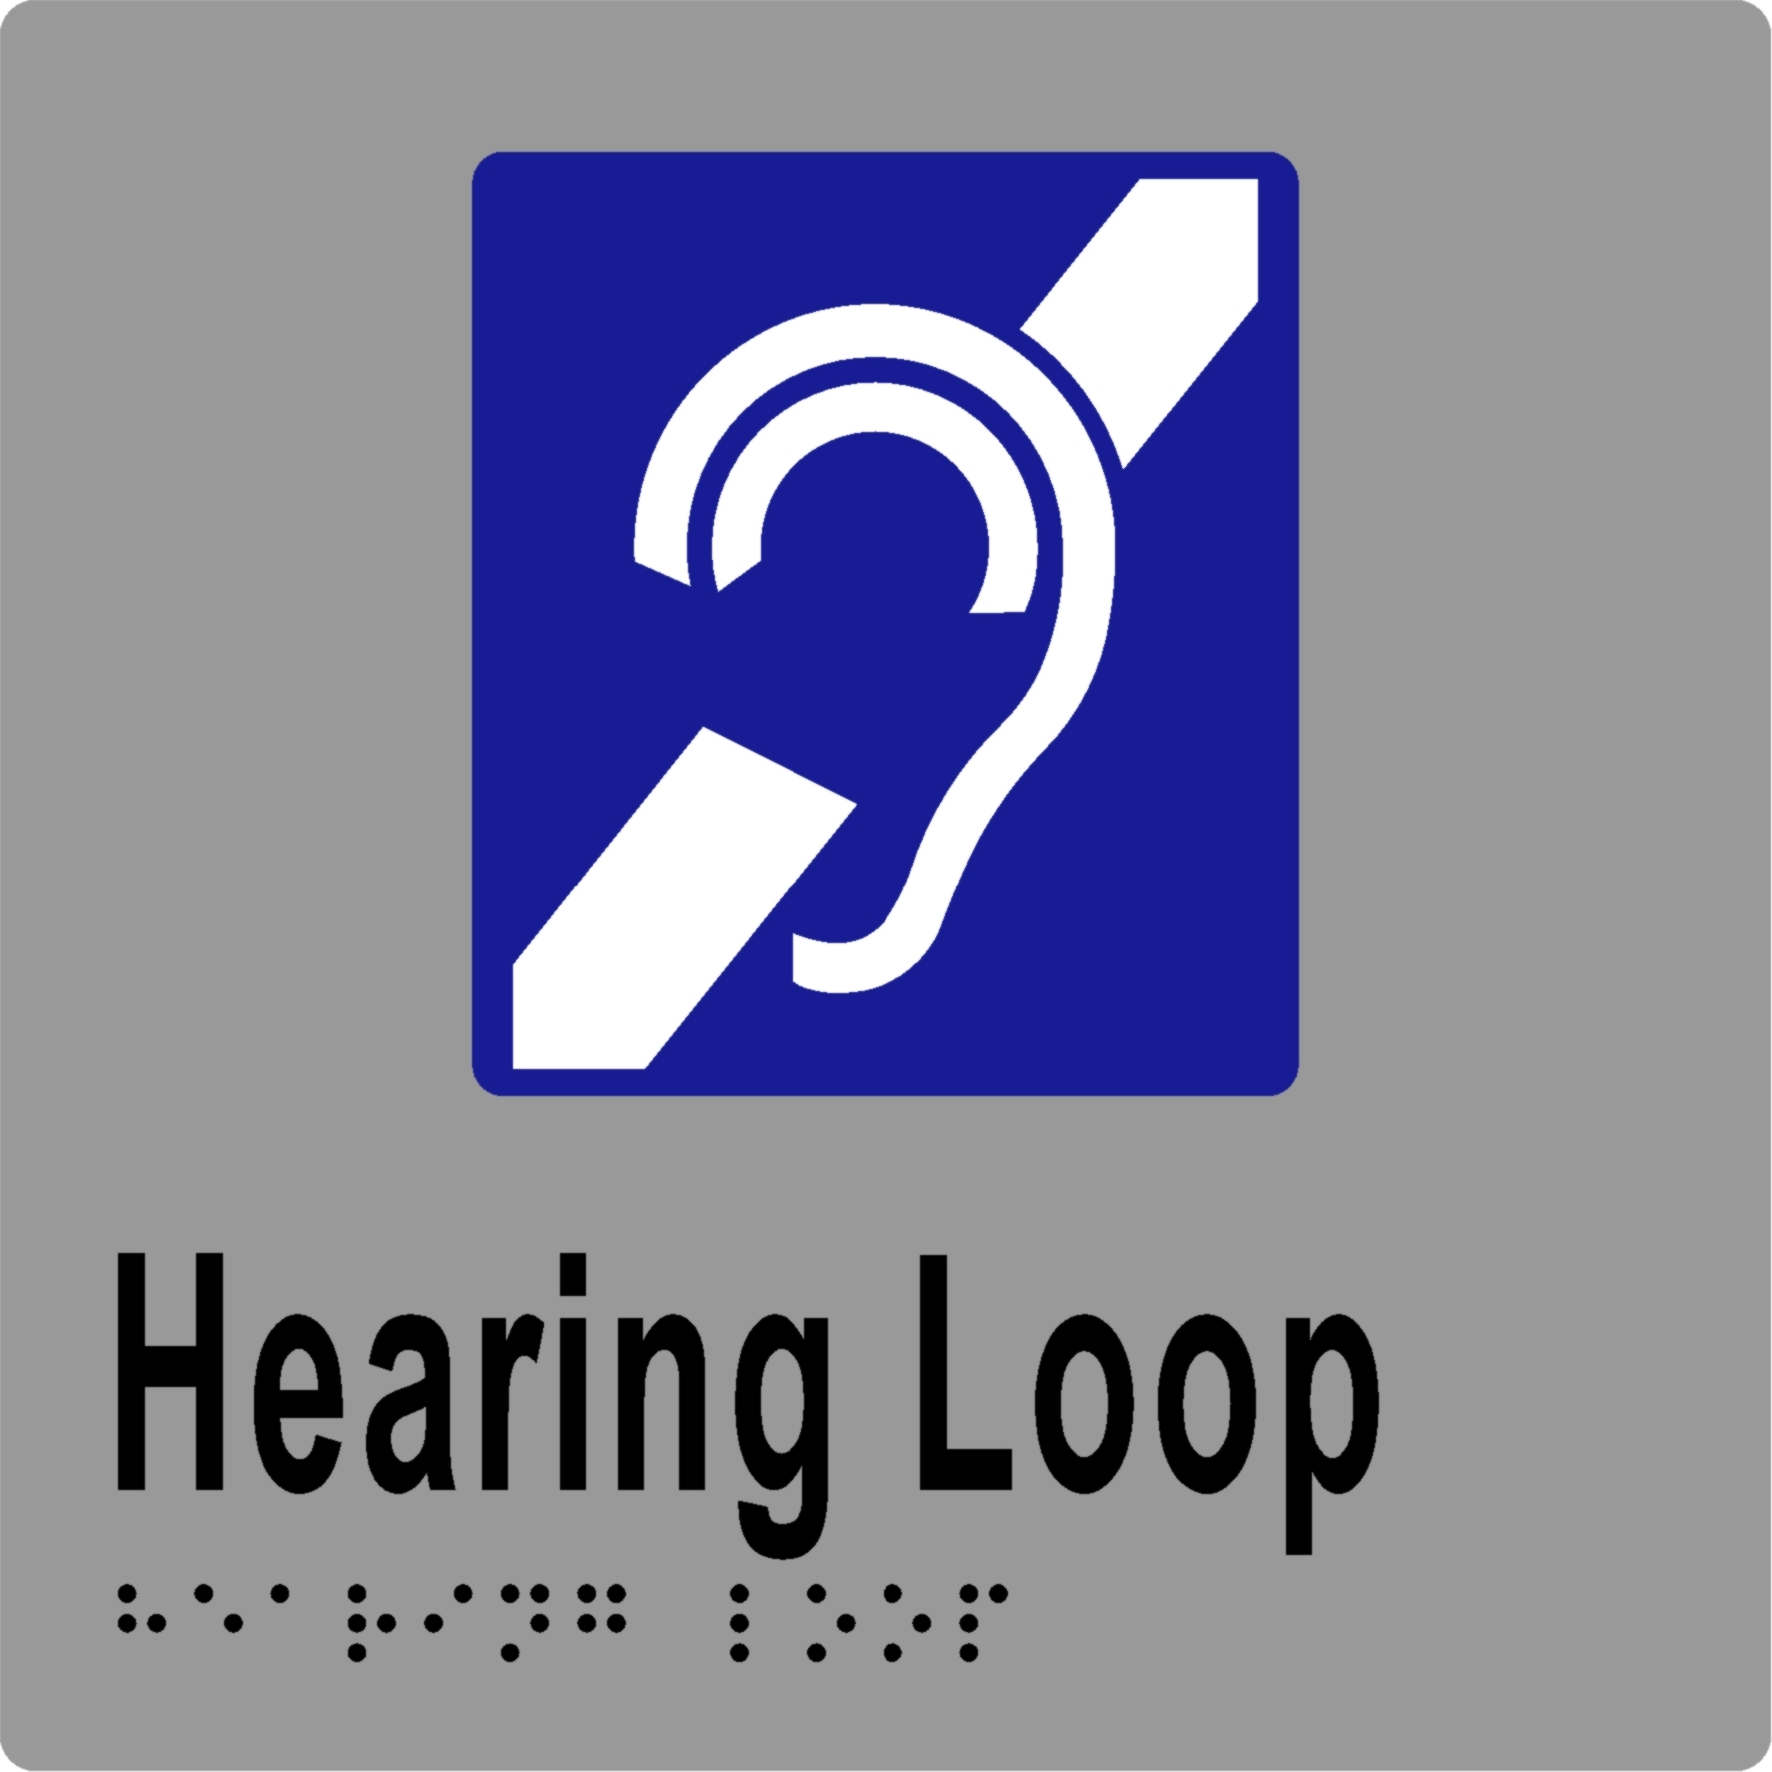 Hearing Loop 150 x 150 BRAILLE